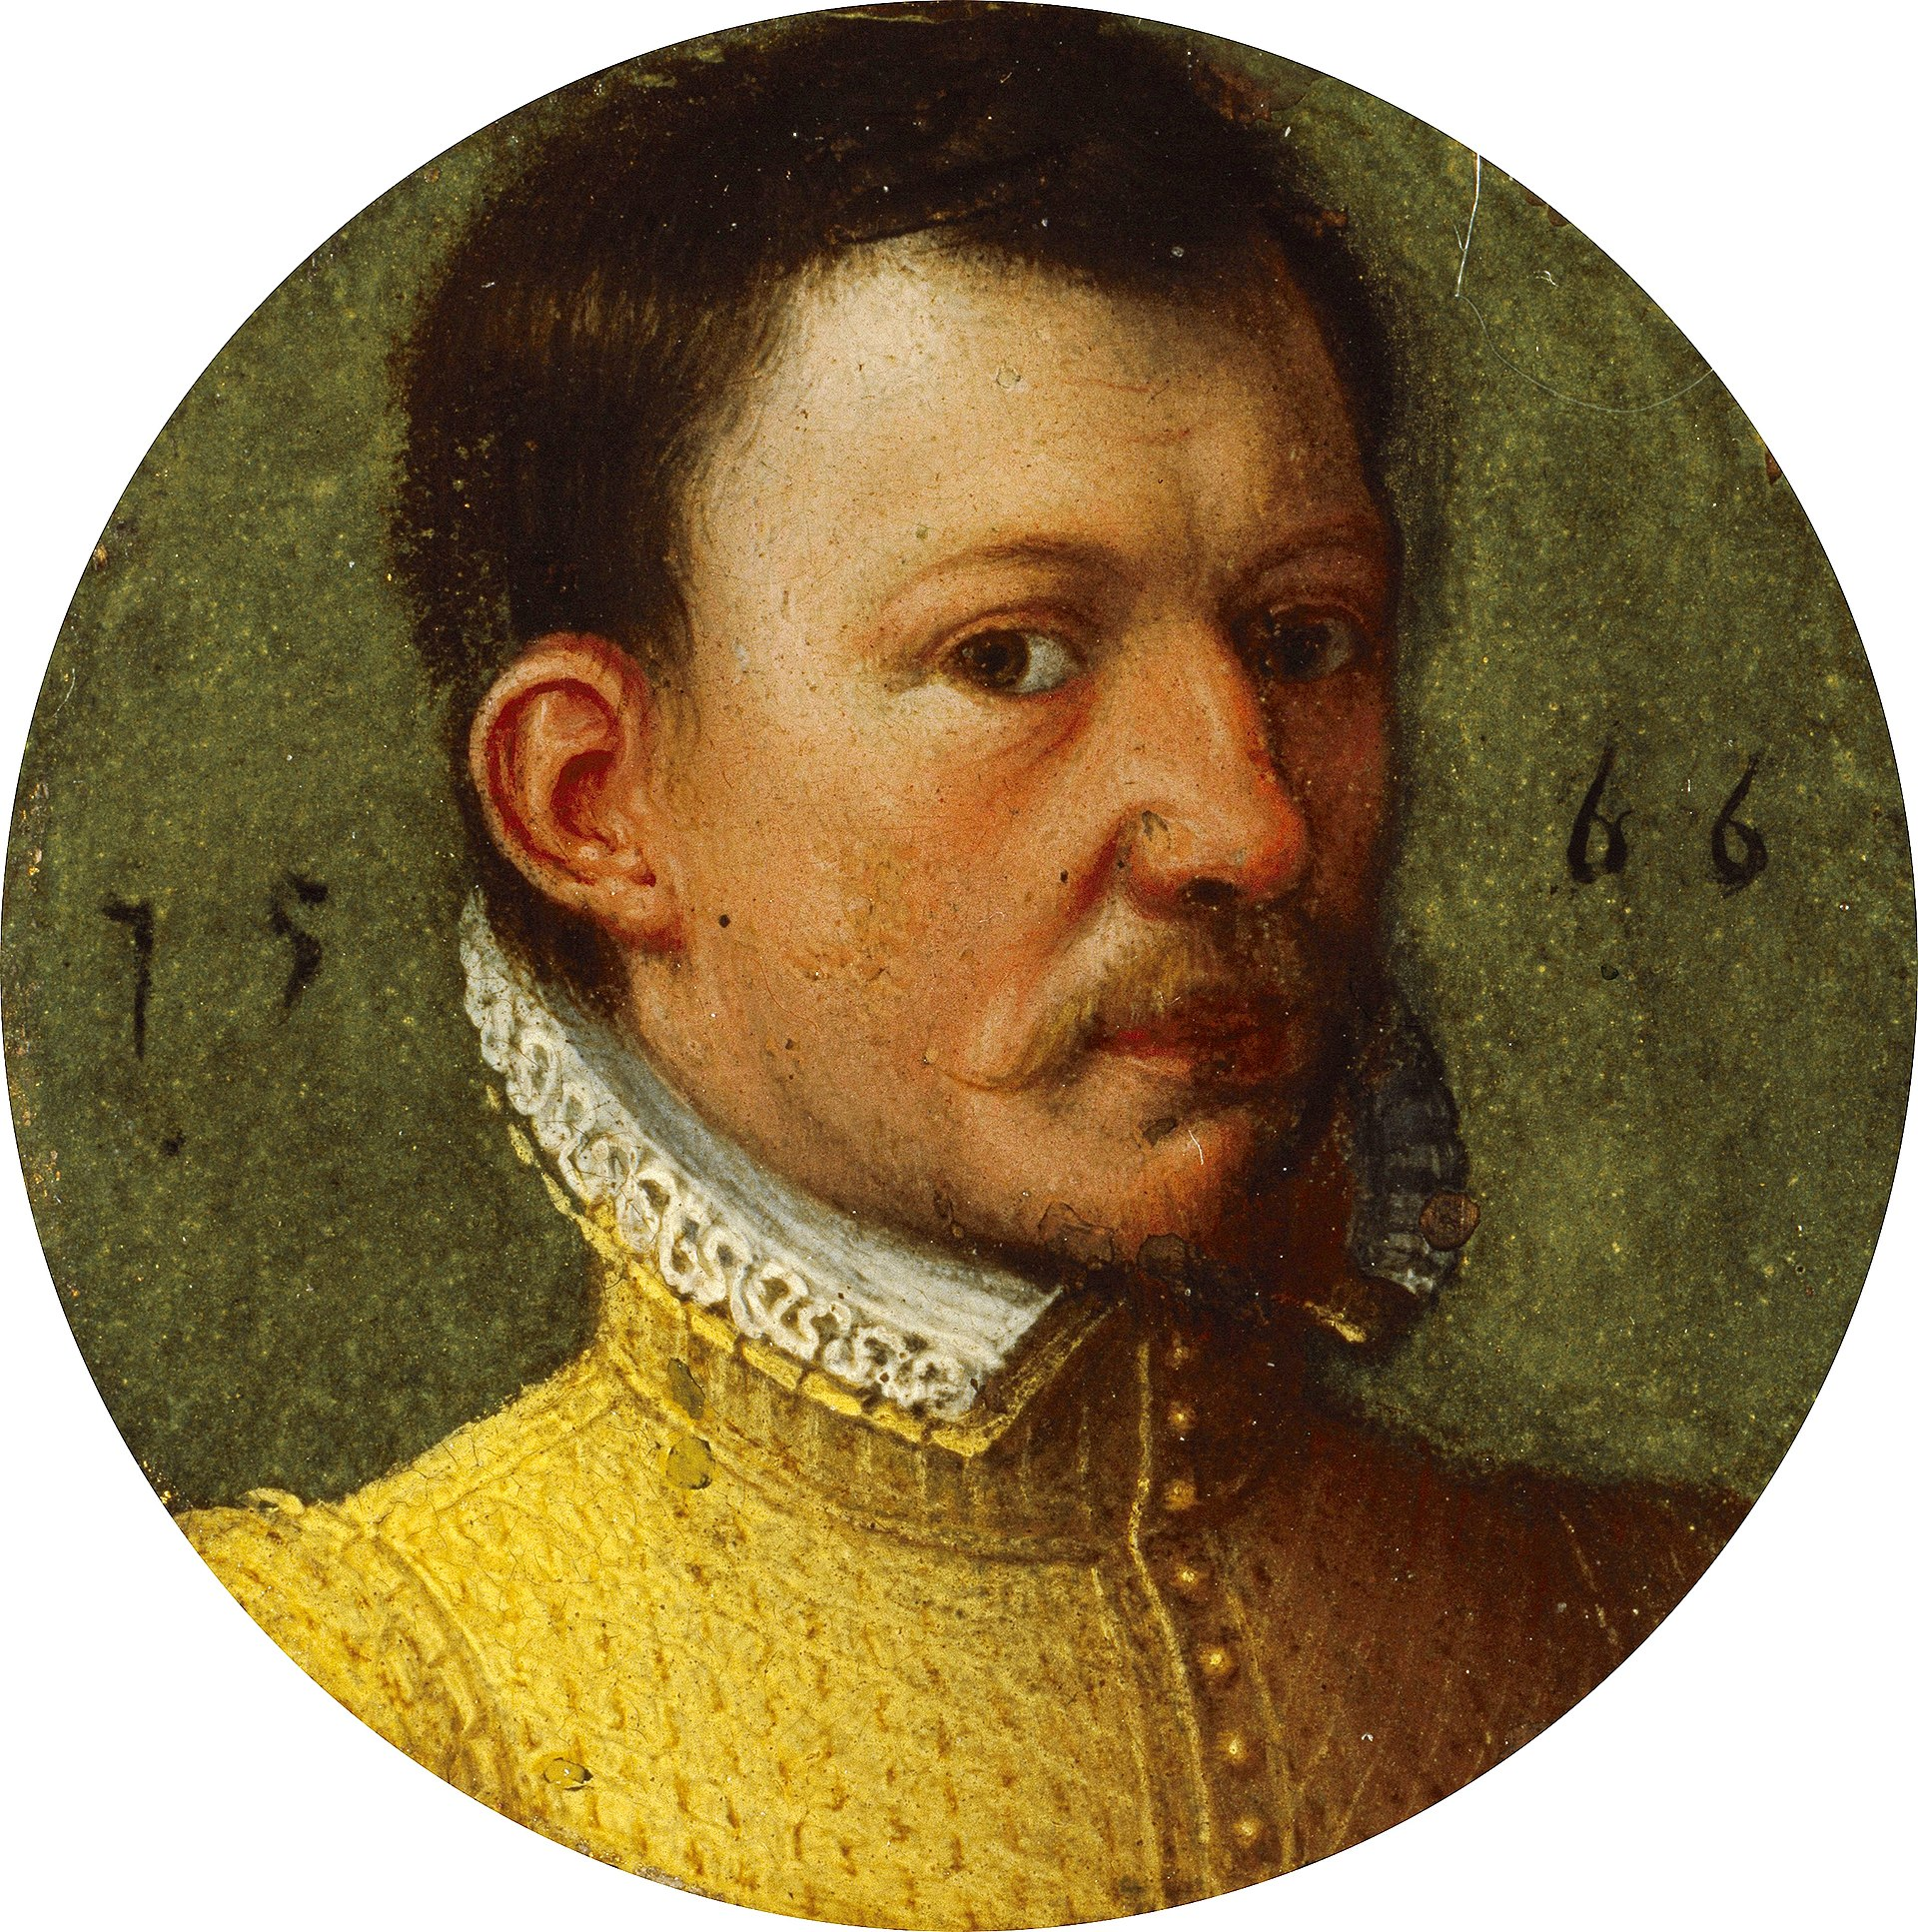 1920px-James_Hepburn,_4th_Earl_of_Bothwell,_c_1535_-_1578._Third_husband_of_Mary_Queen_of_Scots_-_Google_Art_Project